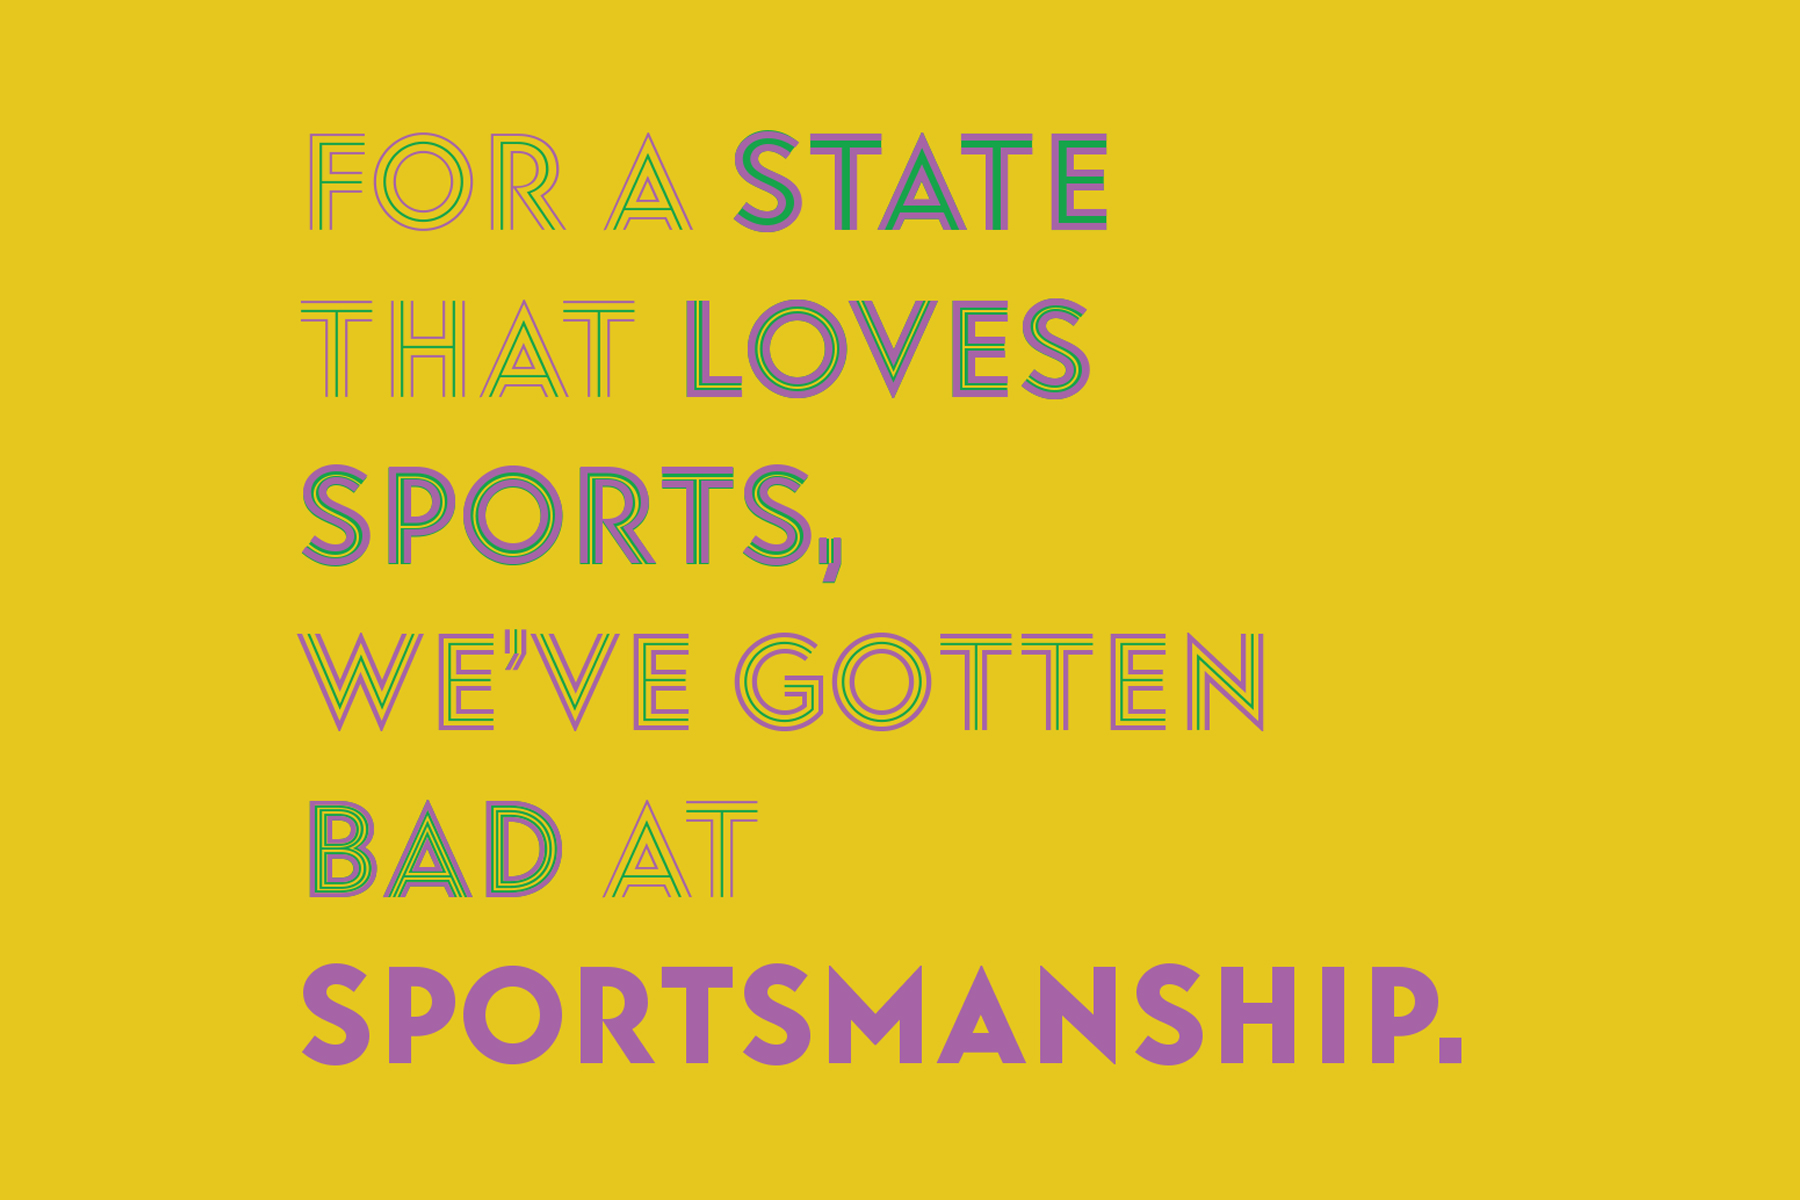 For a state that loves sports, we've gotten bad at sportsmanship.